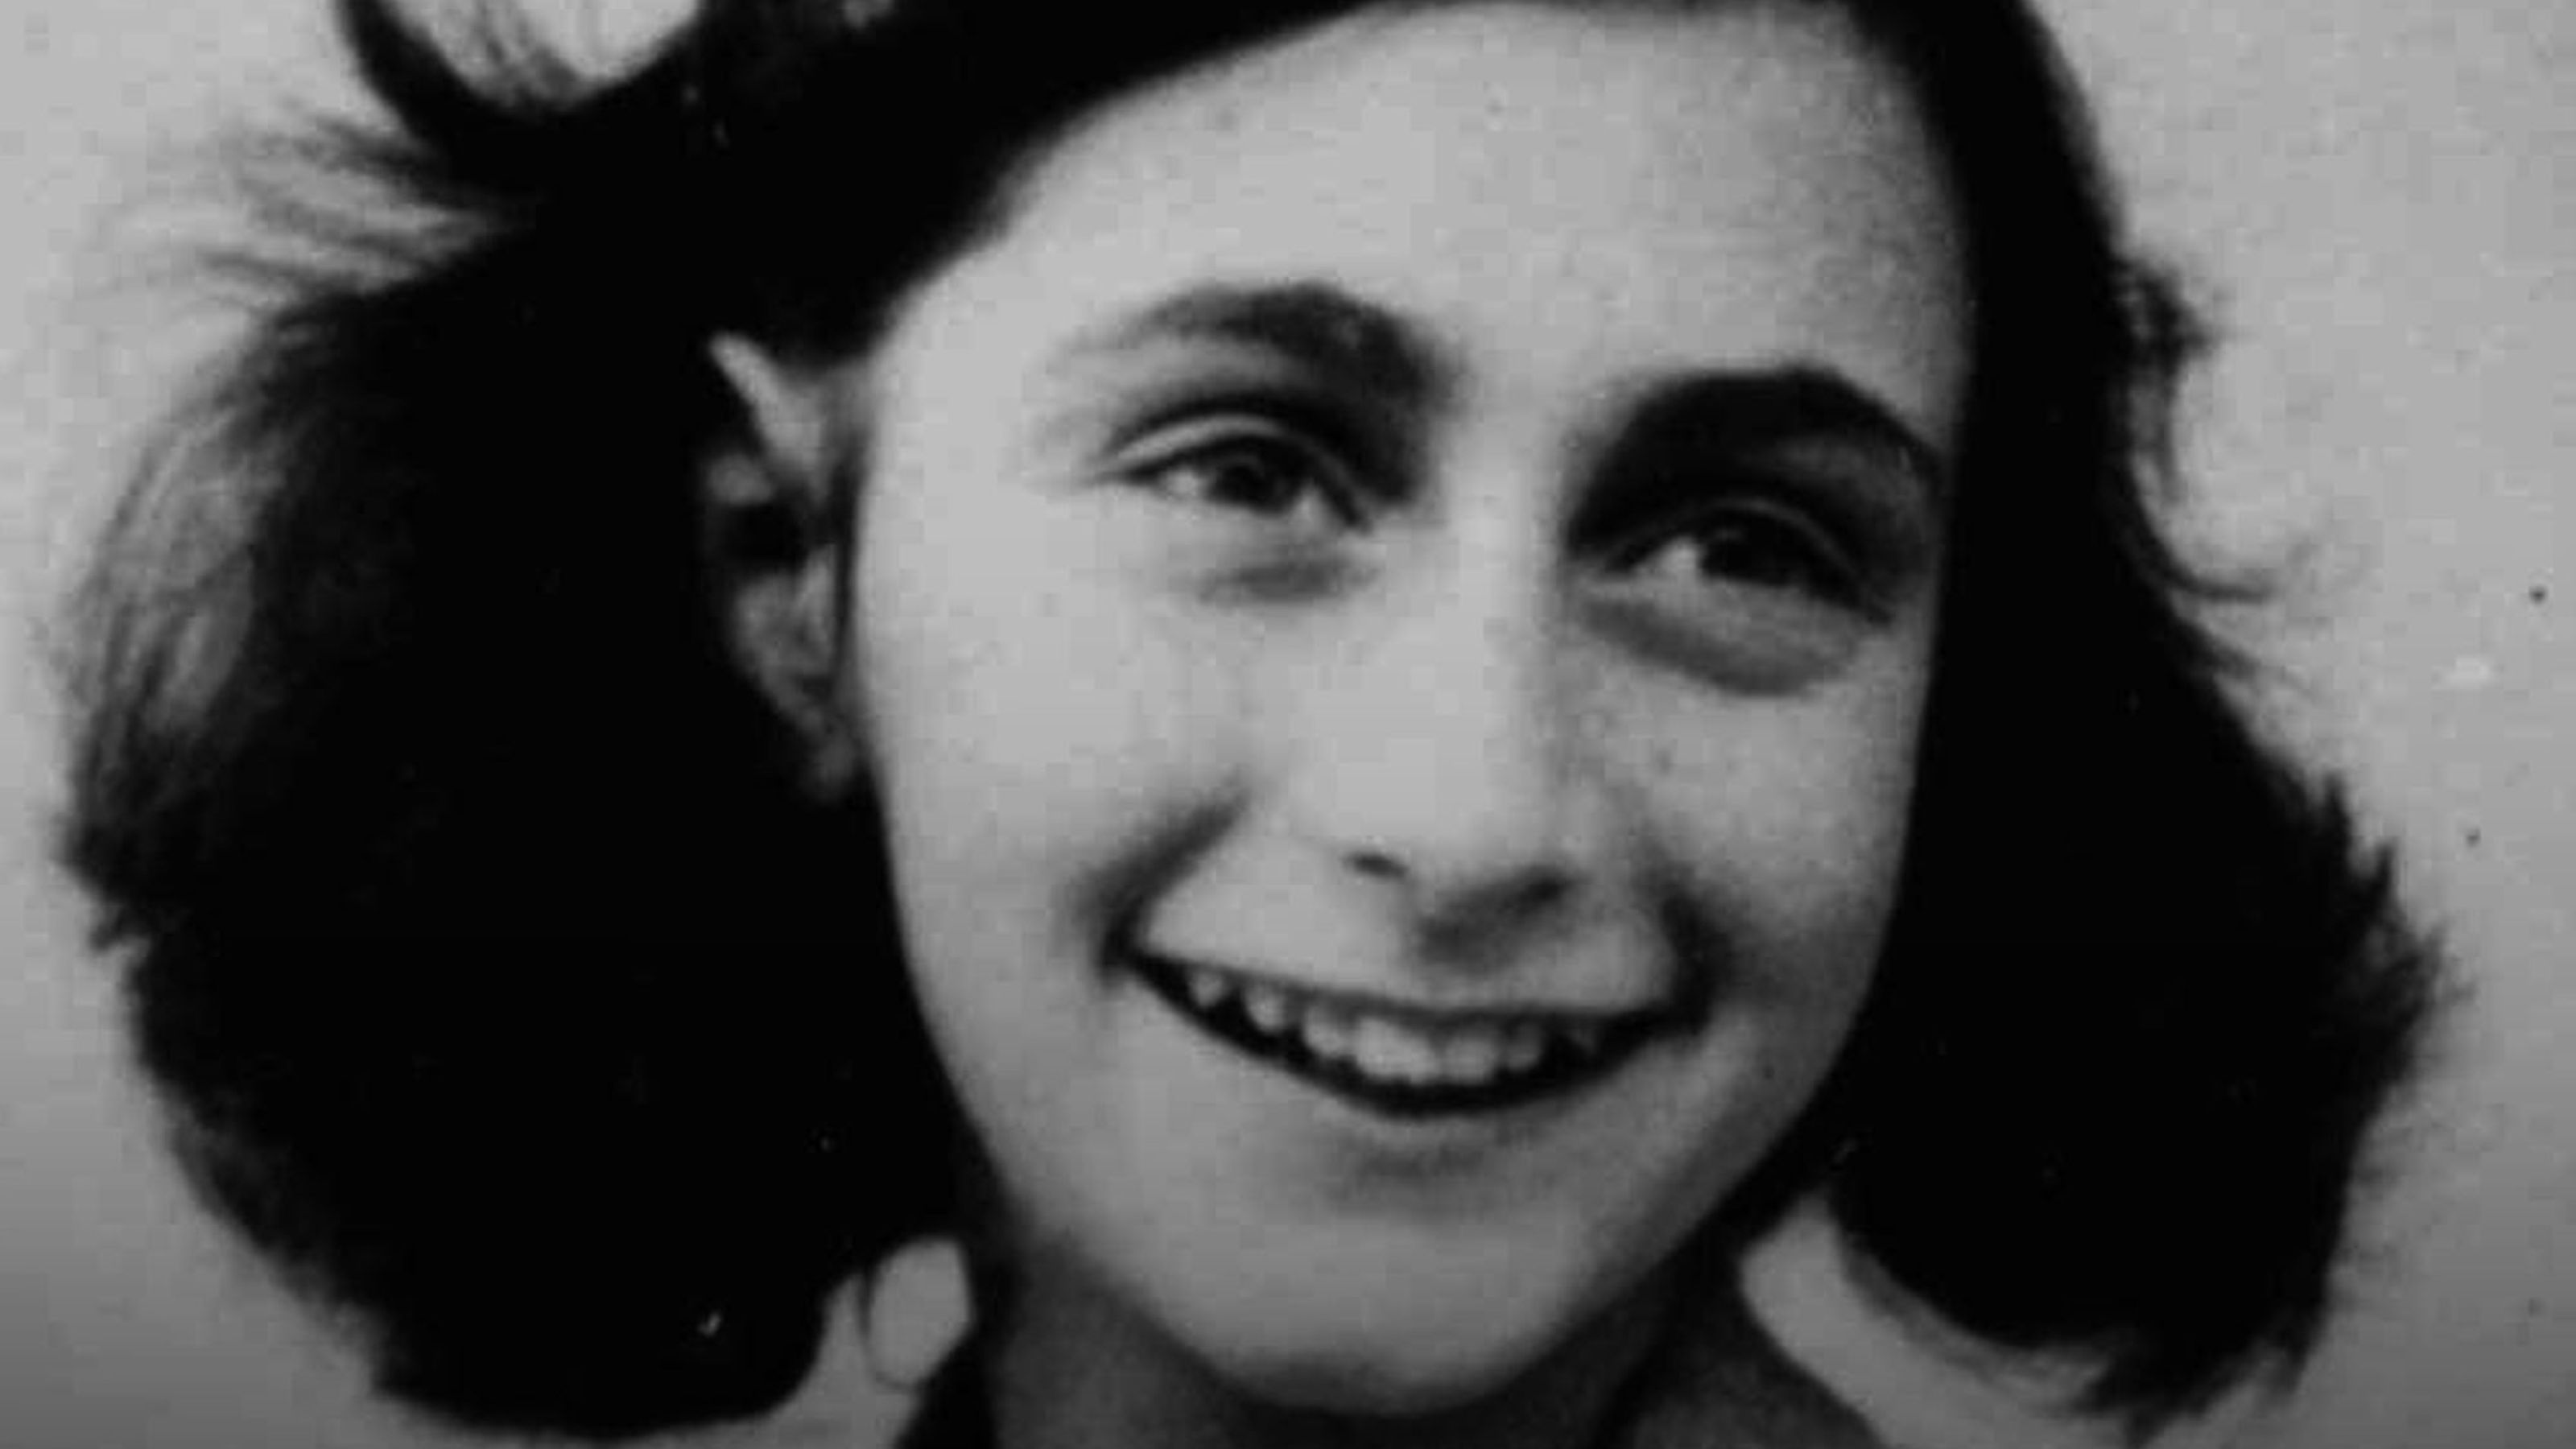 best images about the diary of anne frank 17 best images about the diary of anne frank melting pot fabrics and livingston